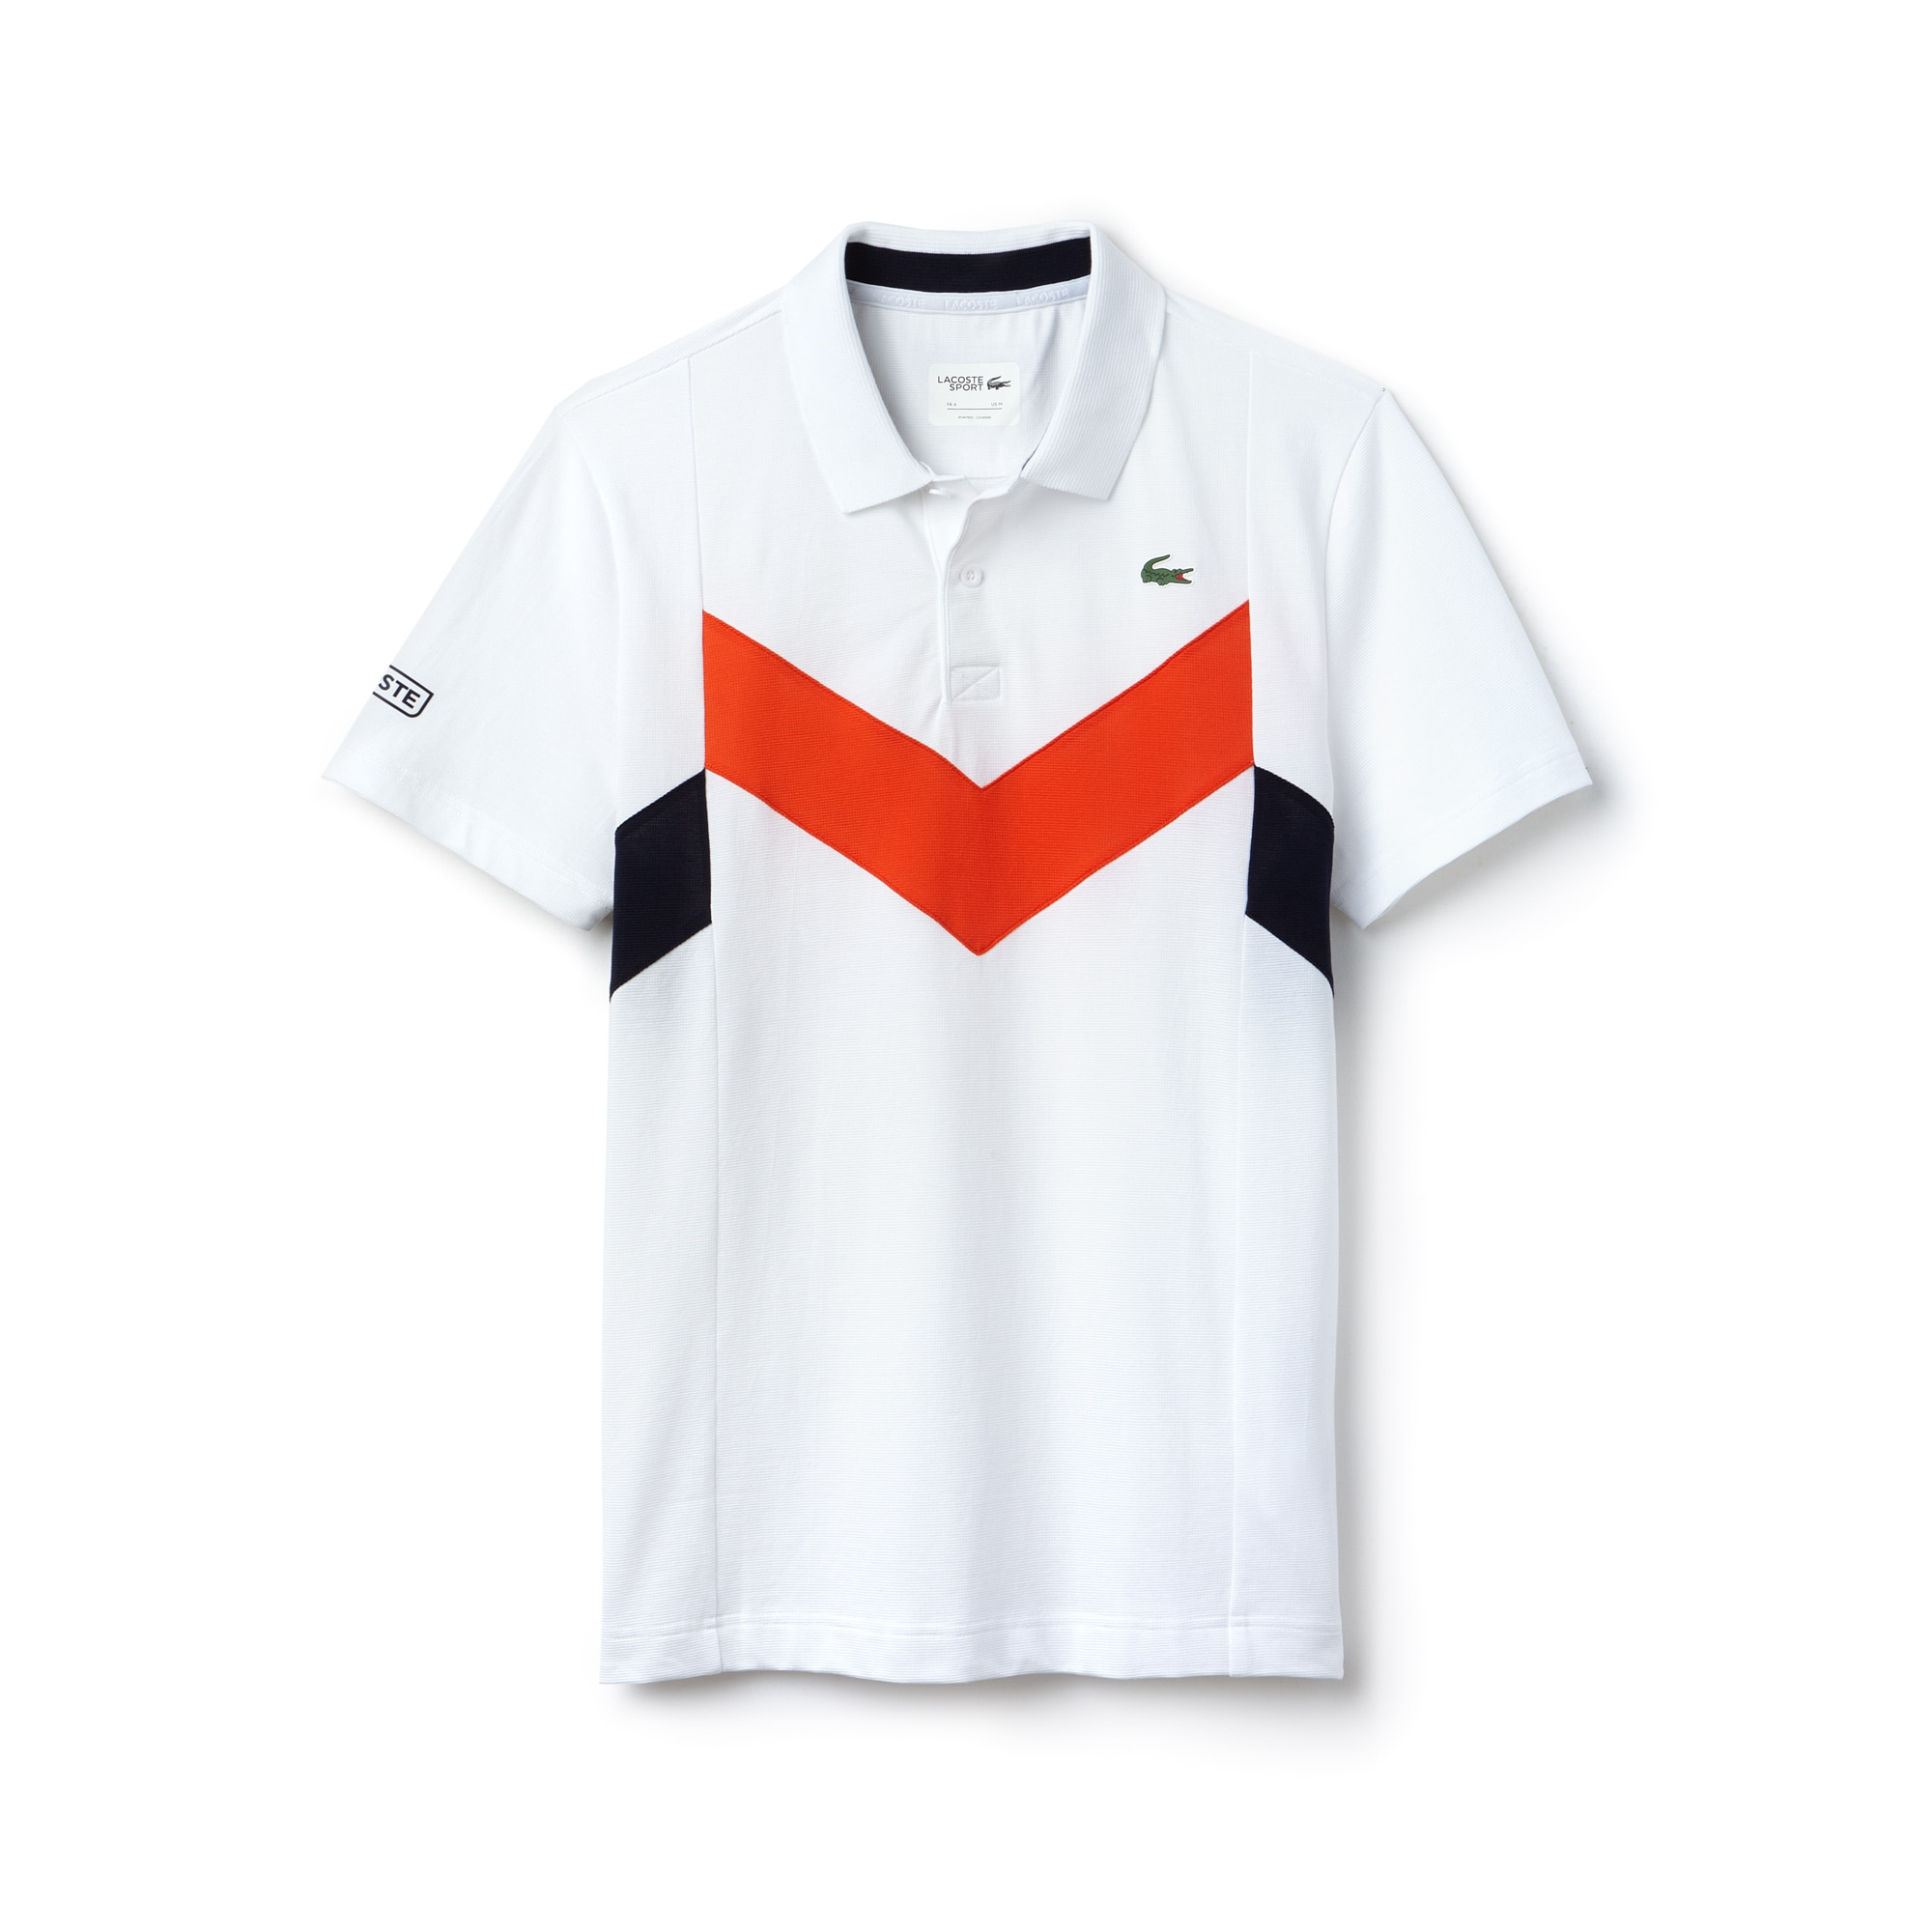 Polo Tennis Lacoste SPORT em malha superleve color block